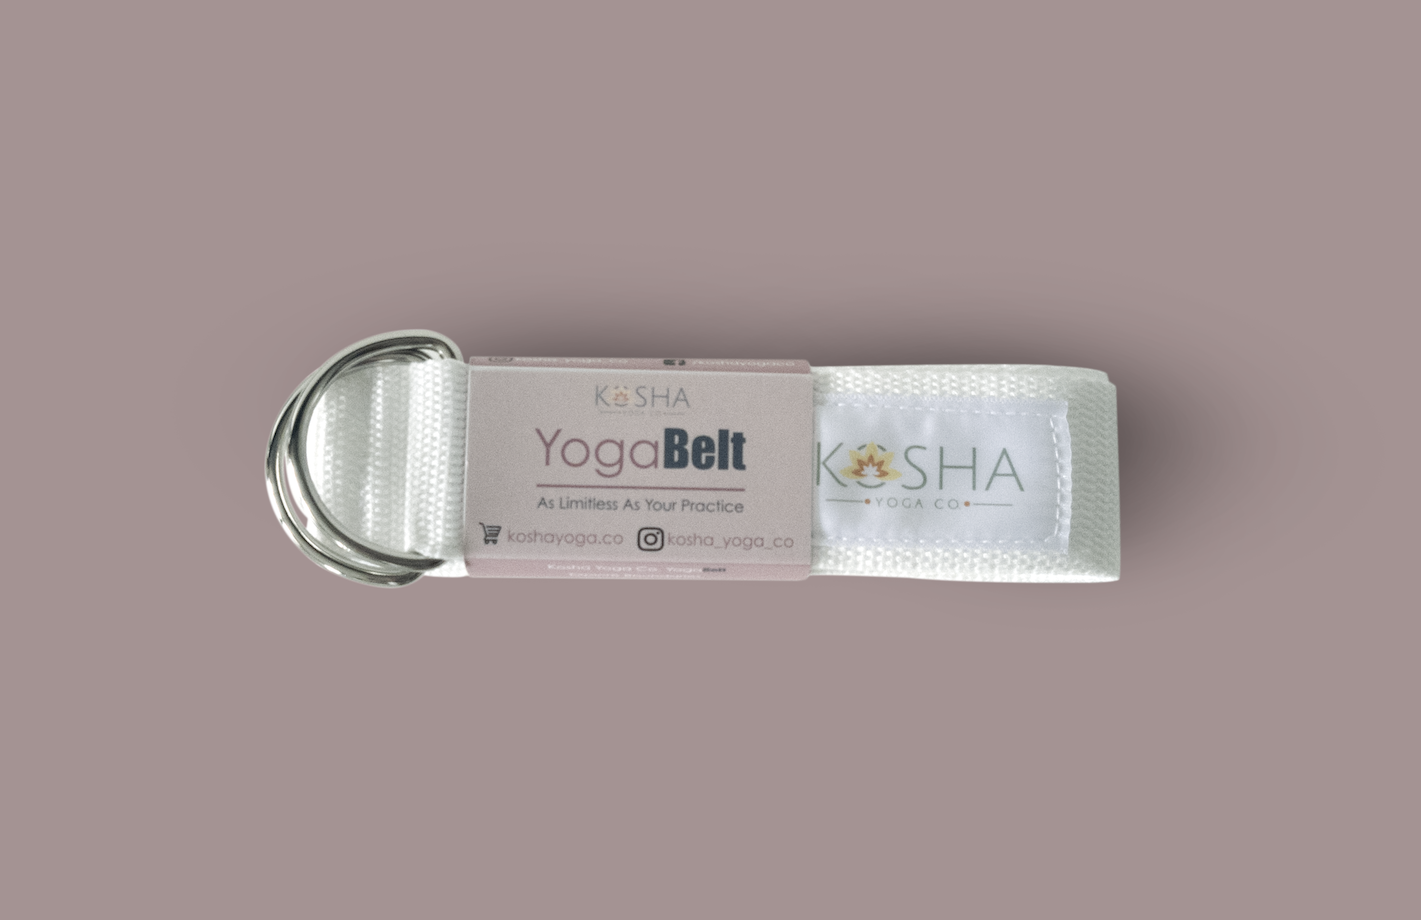 Kosha Yoga Co Yoga Belt Strap